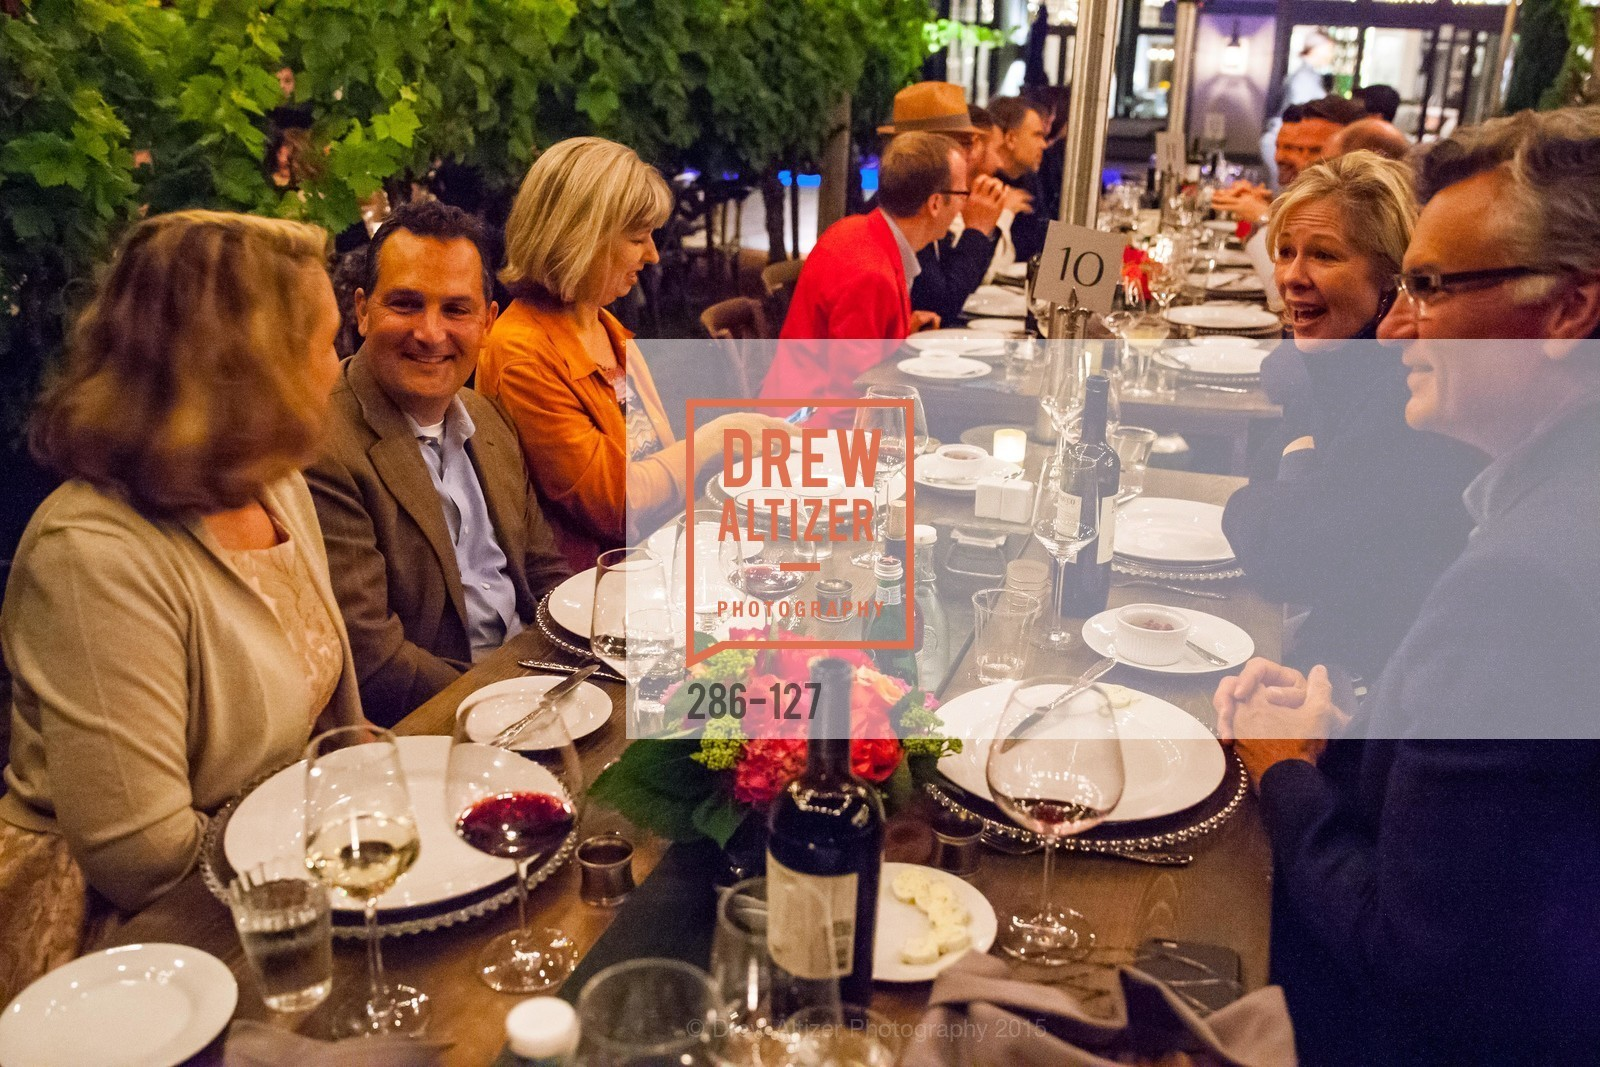 Ann von Germeten, Craig Stevenson, Linda Dujmovich, An Evening in the Vineyard hosted by JACK CALHOUN & TRENT NORRIS, Jack Calhoun & Trent Norris Vineyard. 3393 Dry Creek Road, Healdsburg CA 95448, May 22nd, 2015,Drew Altizer, Drew Altizer Photography, full-service agency, private events, San Francisco photographer, photographer california